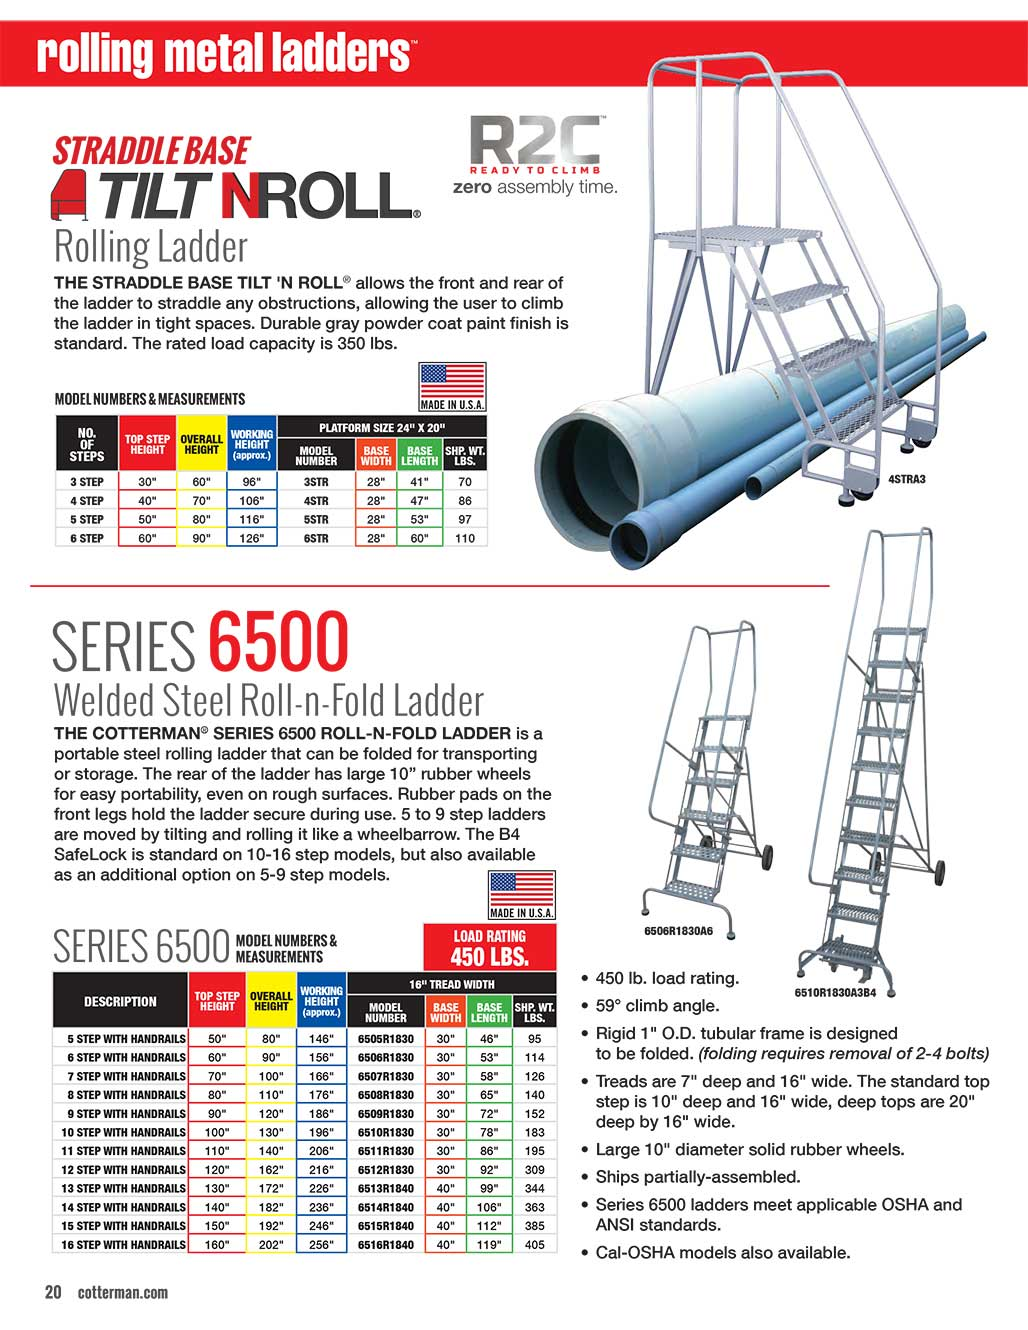 Cotterman Straddle Base Tilt-N-Roll Ladder Technical Specs